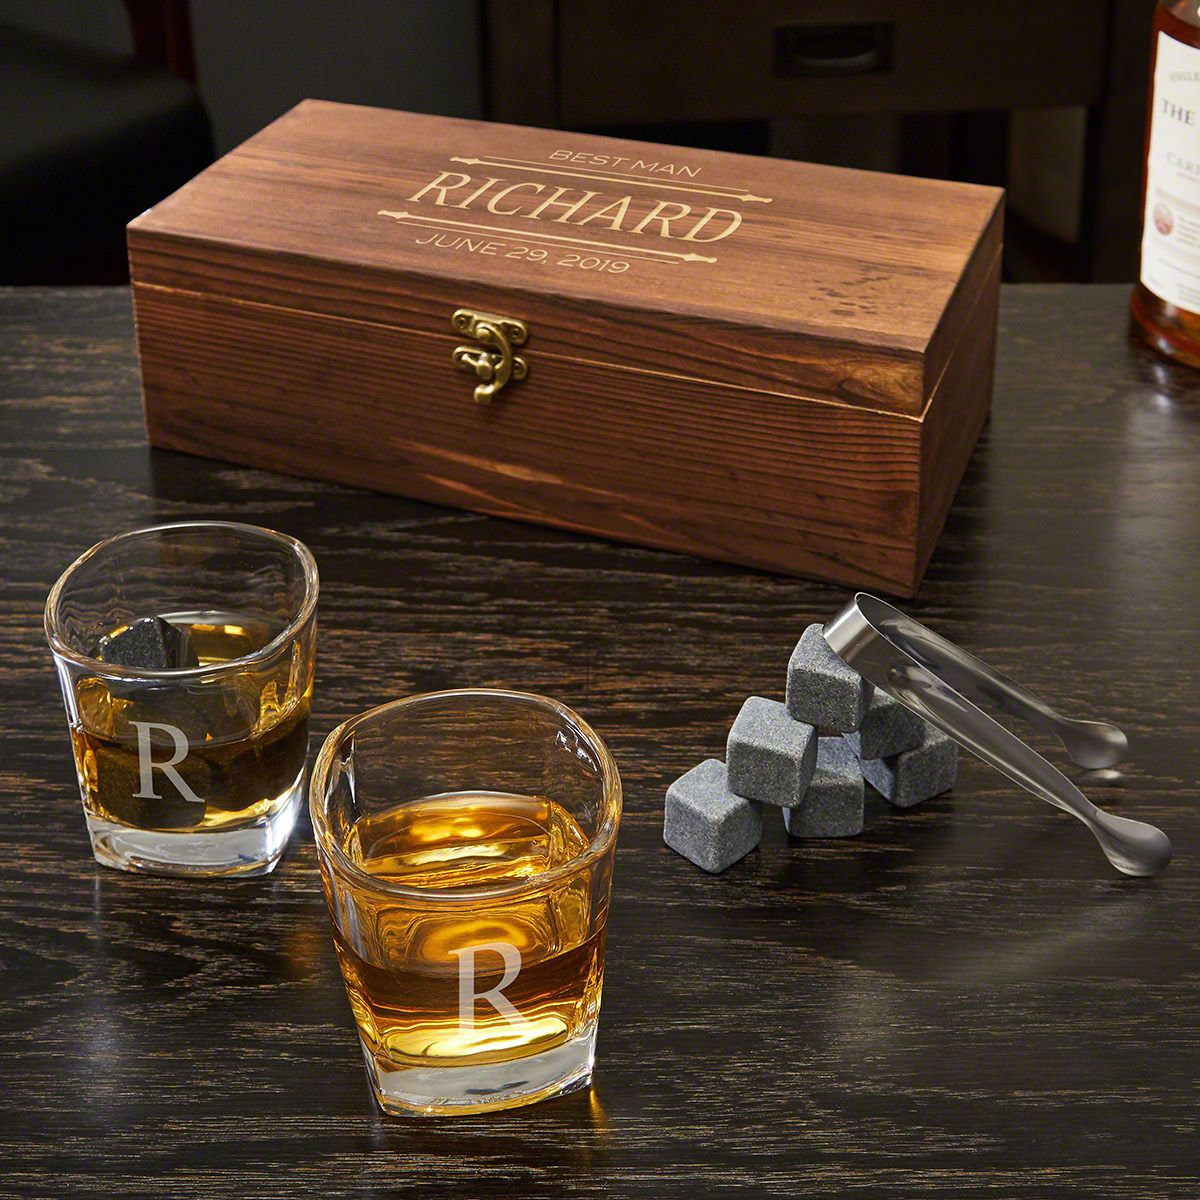 Stanford Personalized Whiskey Stones and Glasses Gift Set